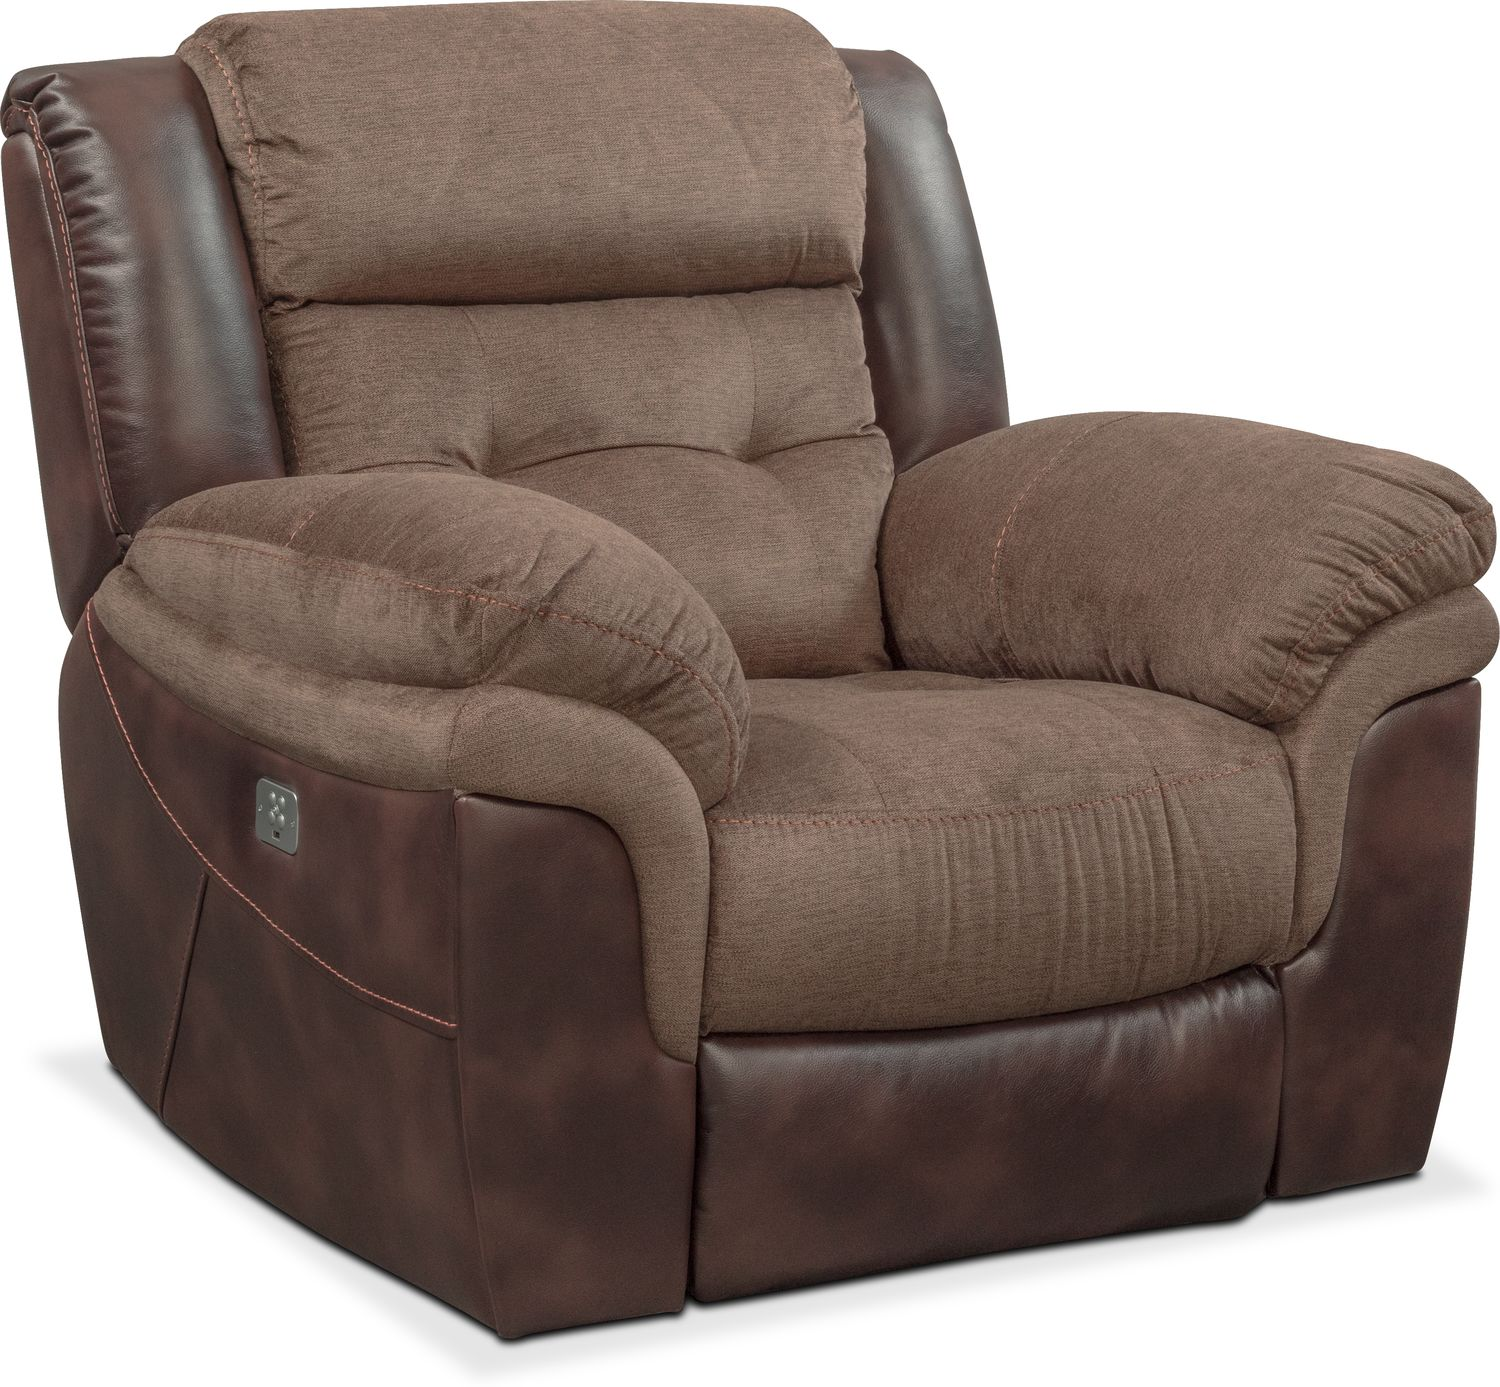 Tacoma Dual Power Recliner Brown Value City Furniture